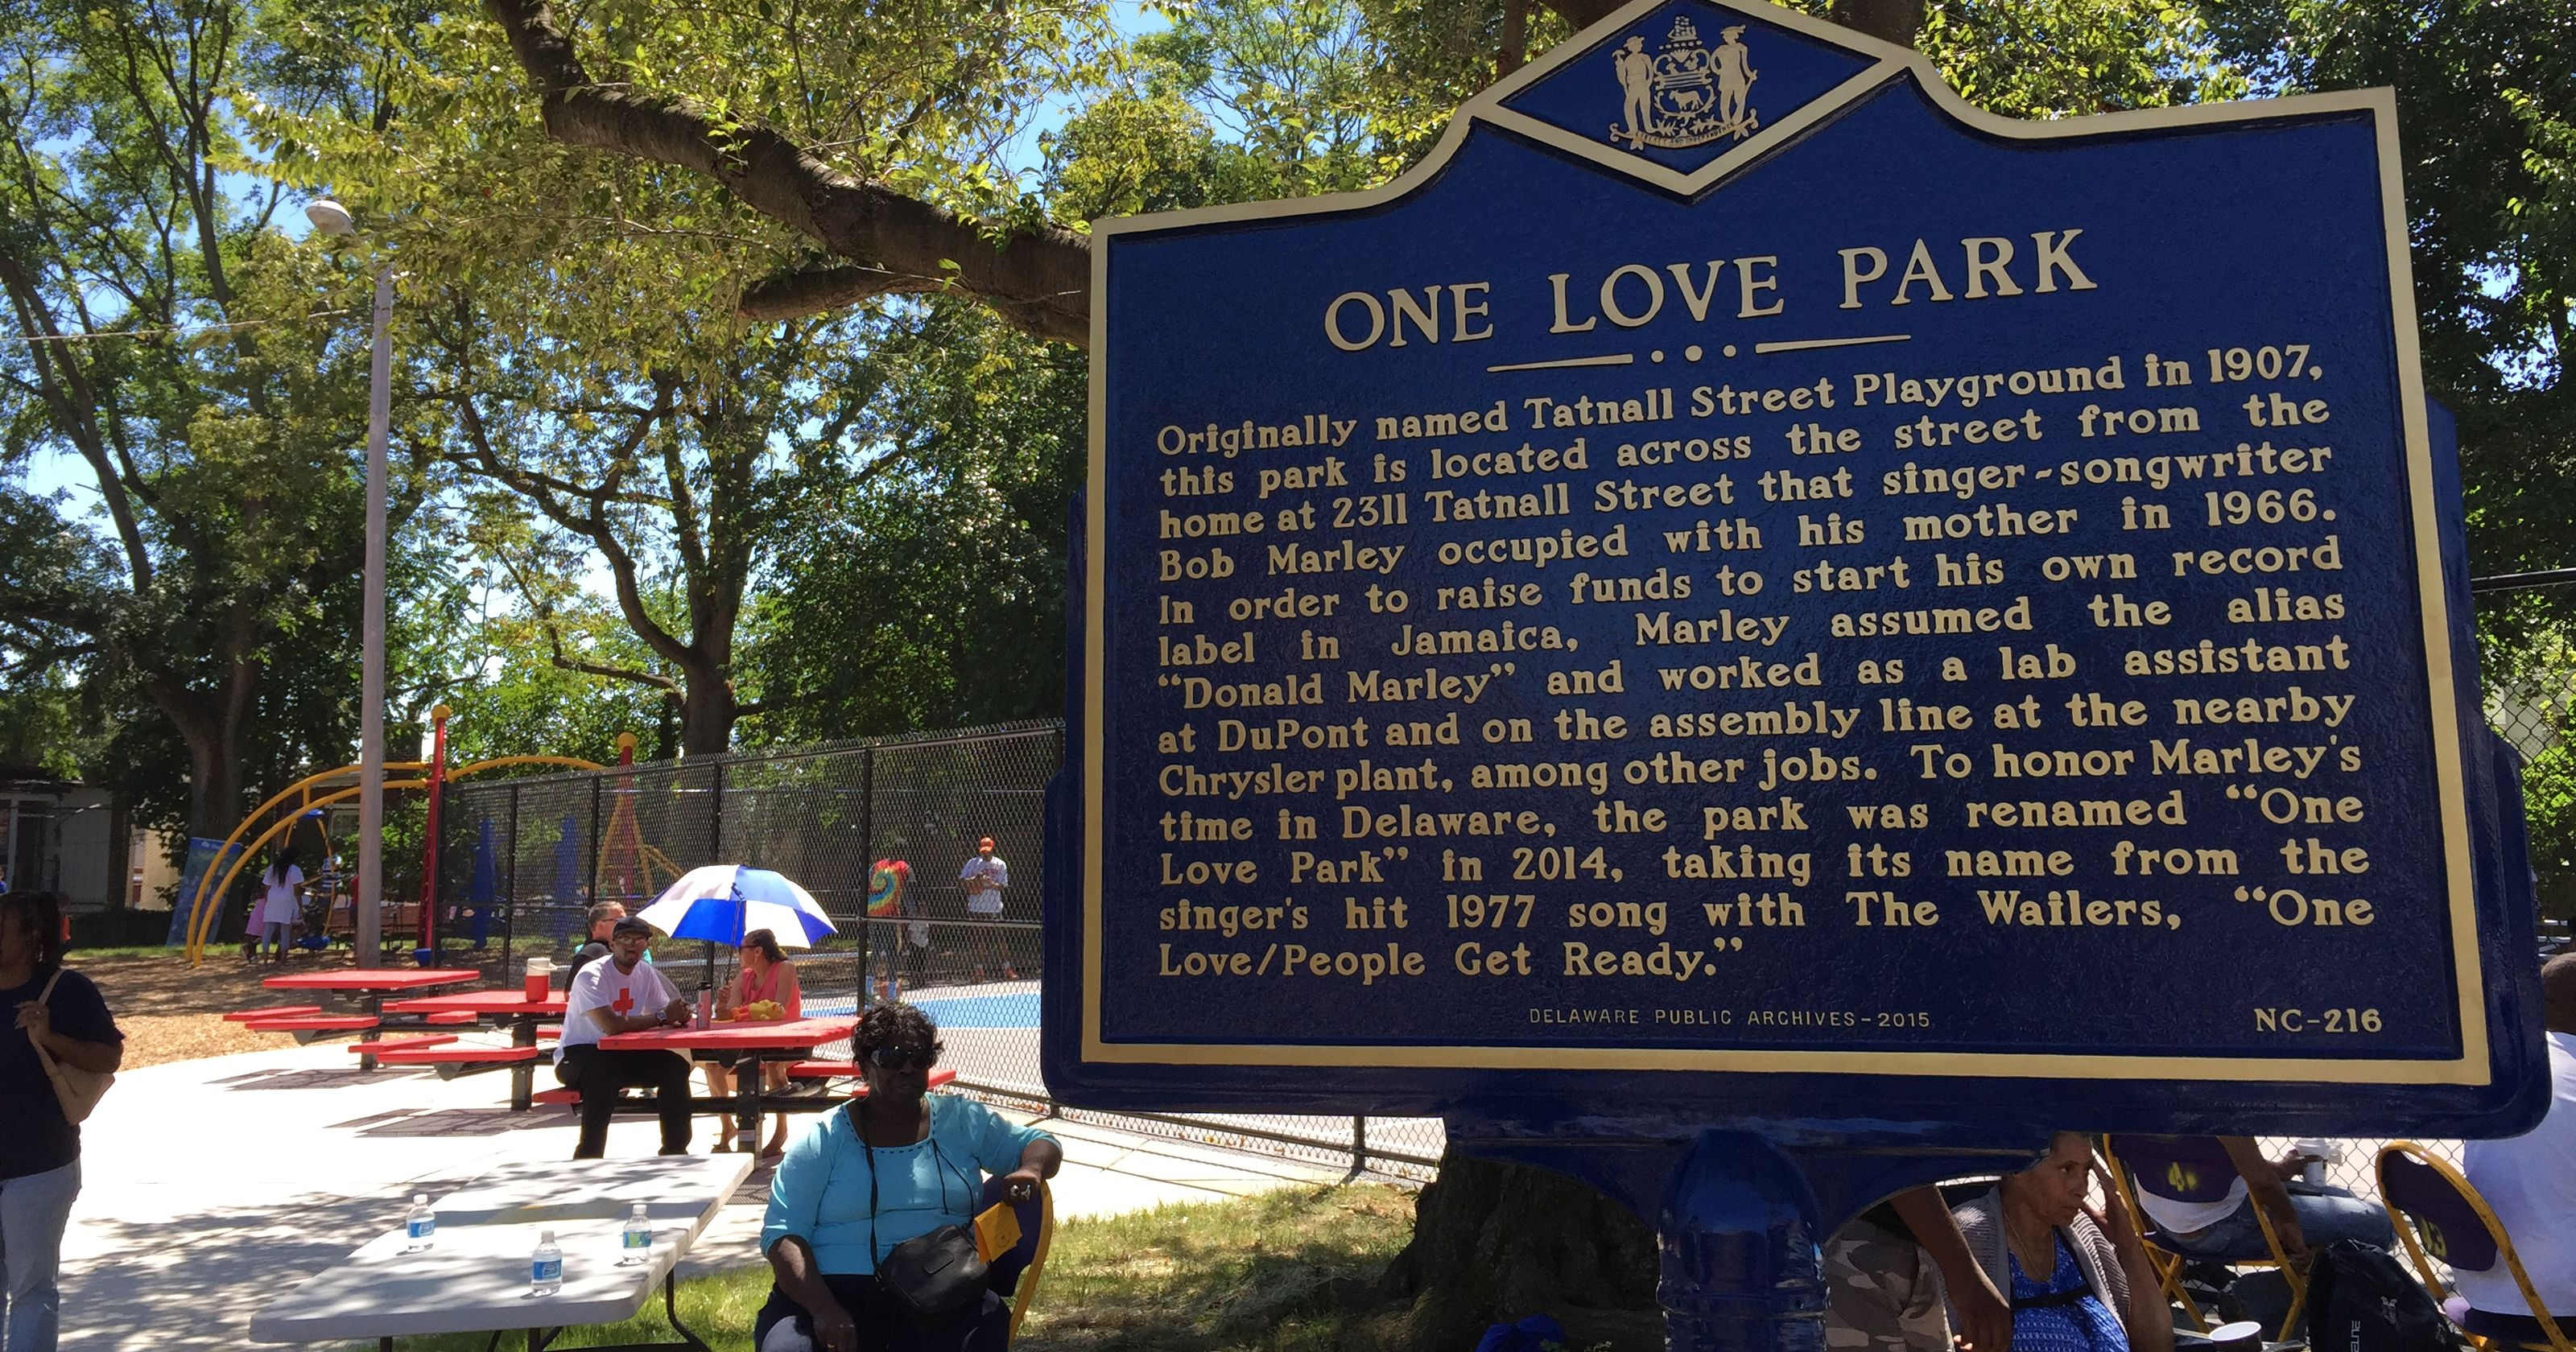 Historical marker at One Love Park